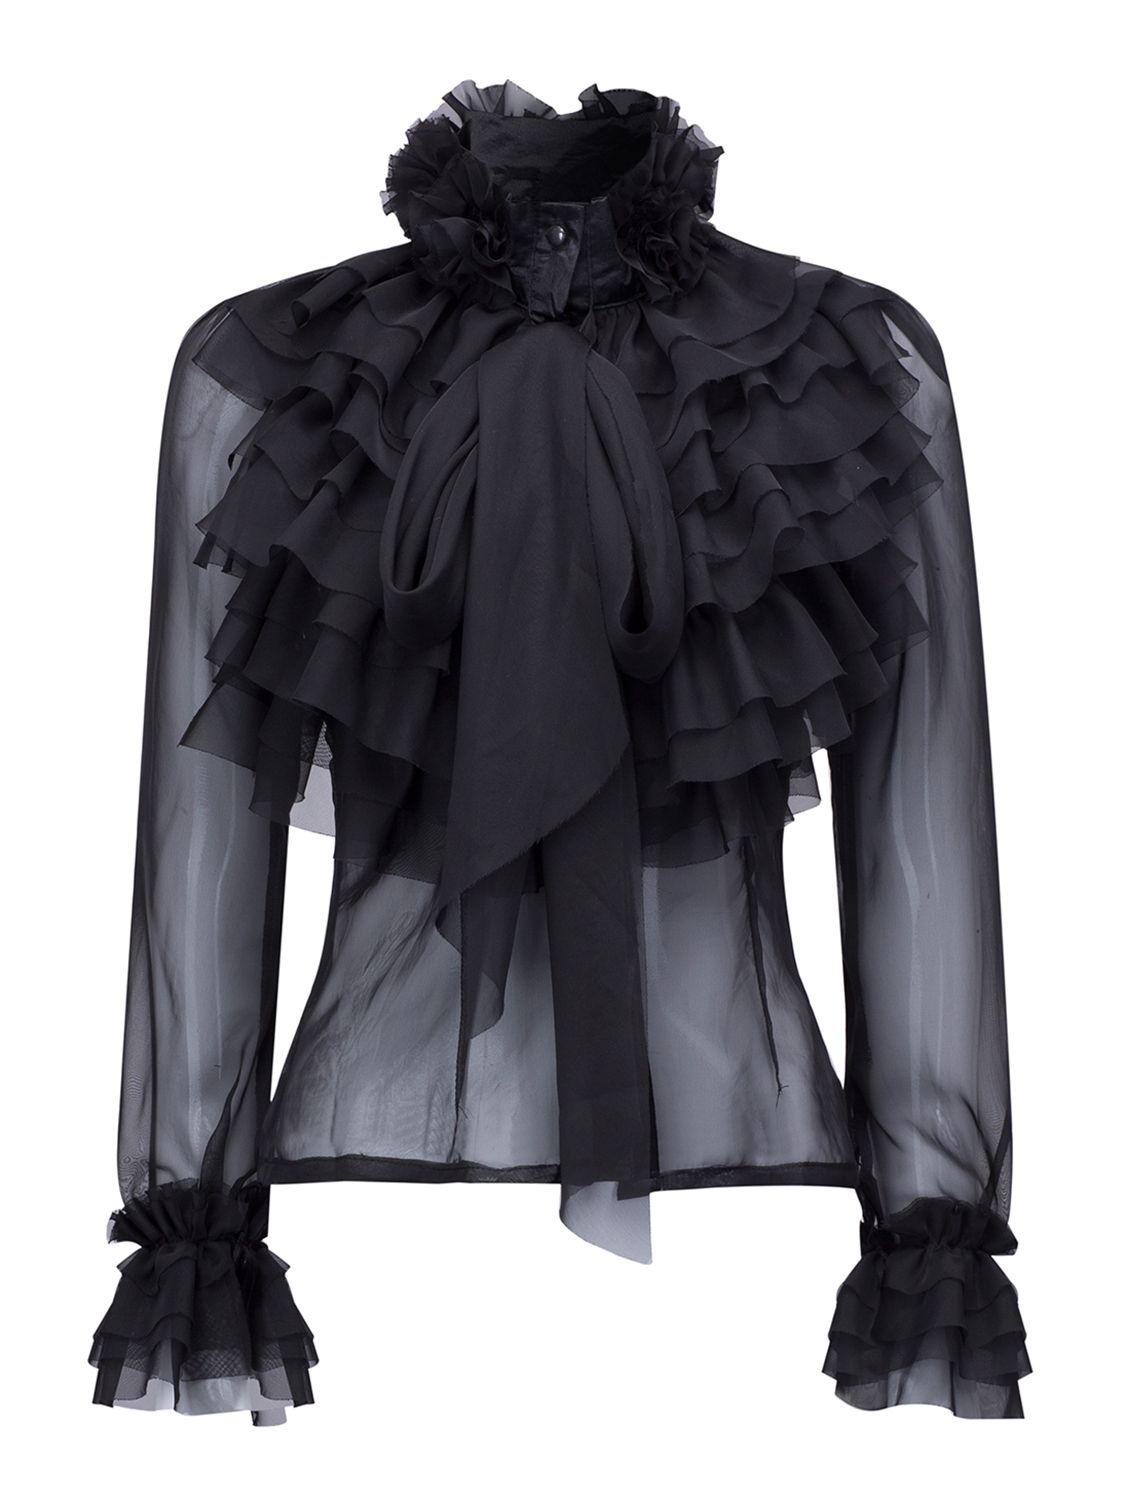 0a16220758f11 Shop Black High Neck Bow Tie Front Layered Ruffle Sheer Shirt from  choies.com .Free shipping Worldwide. 29.9